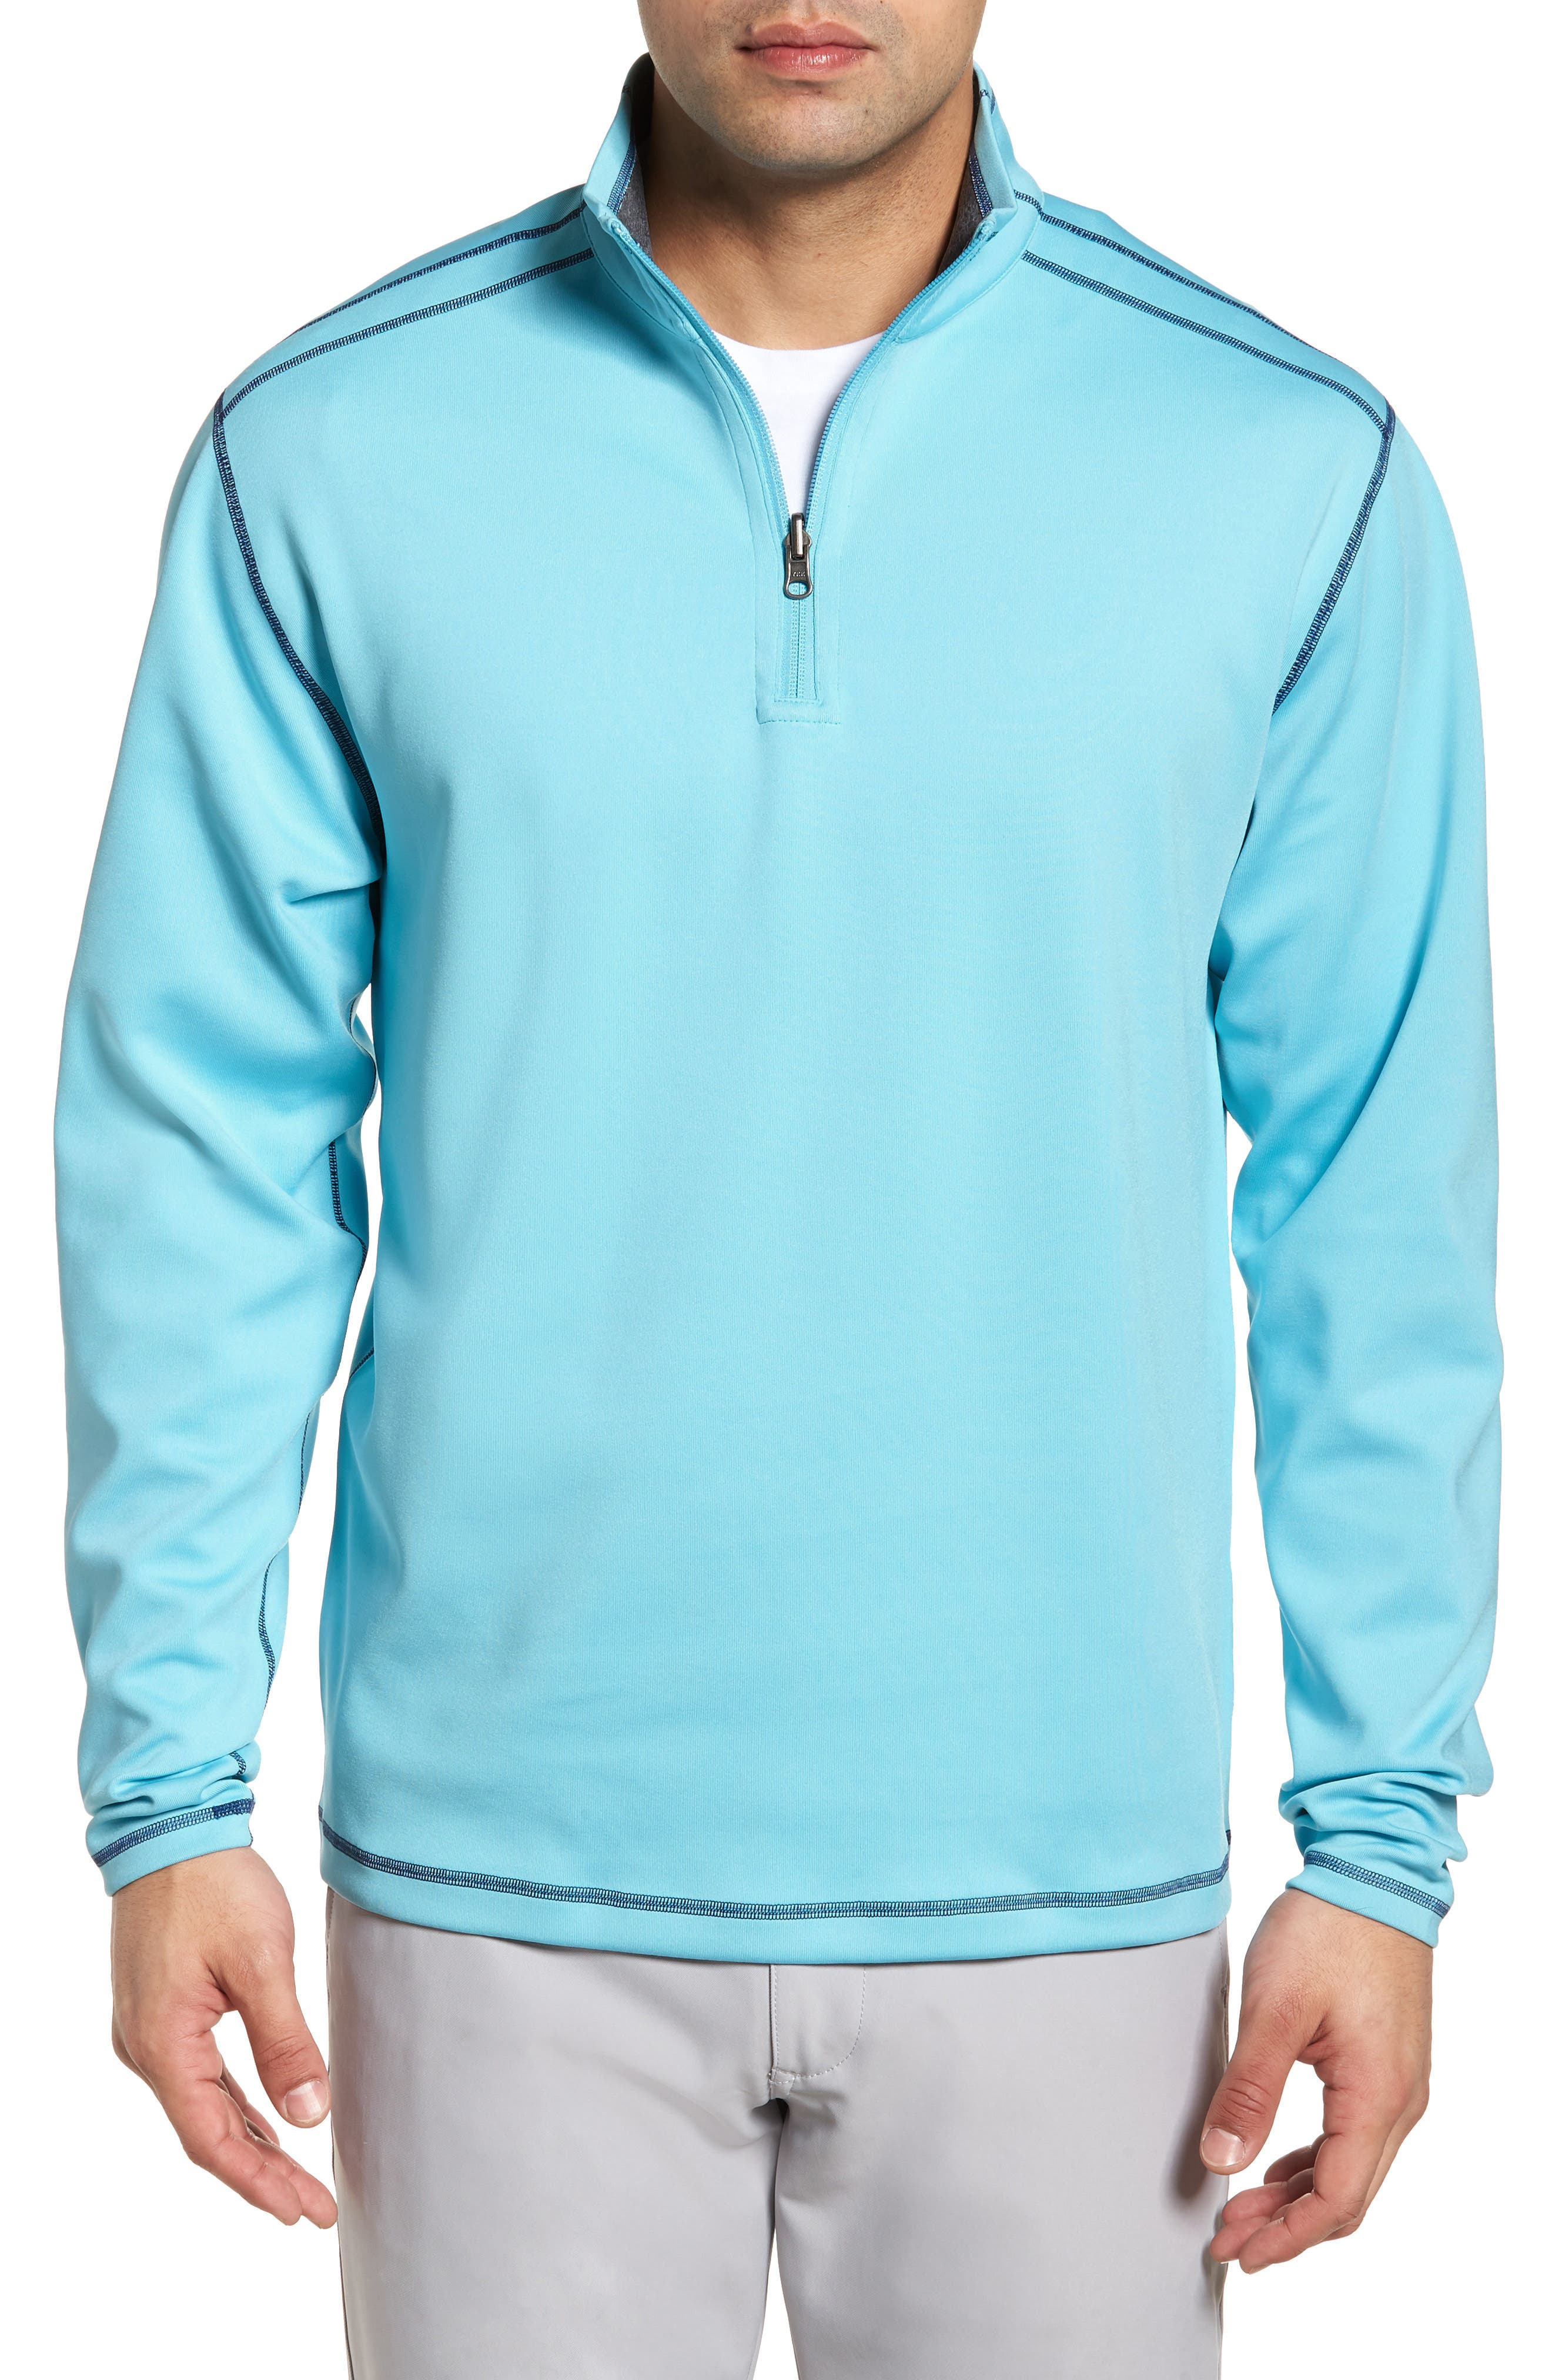 Main Image - Cutter & Buck Evergreen Classic Fit DryTec Reversible Half Zip Pullover